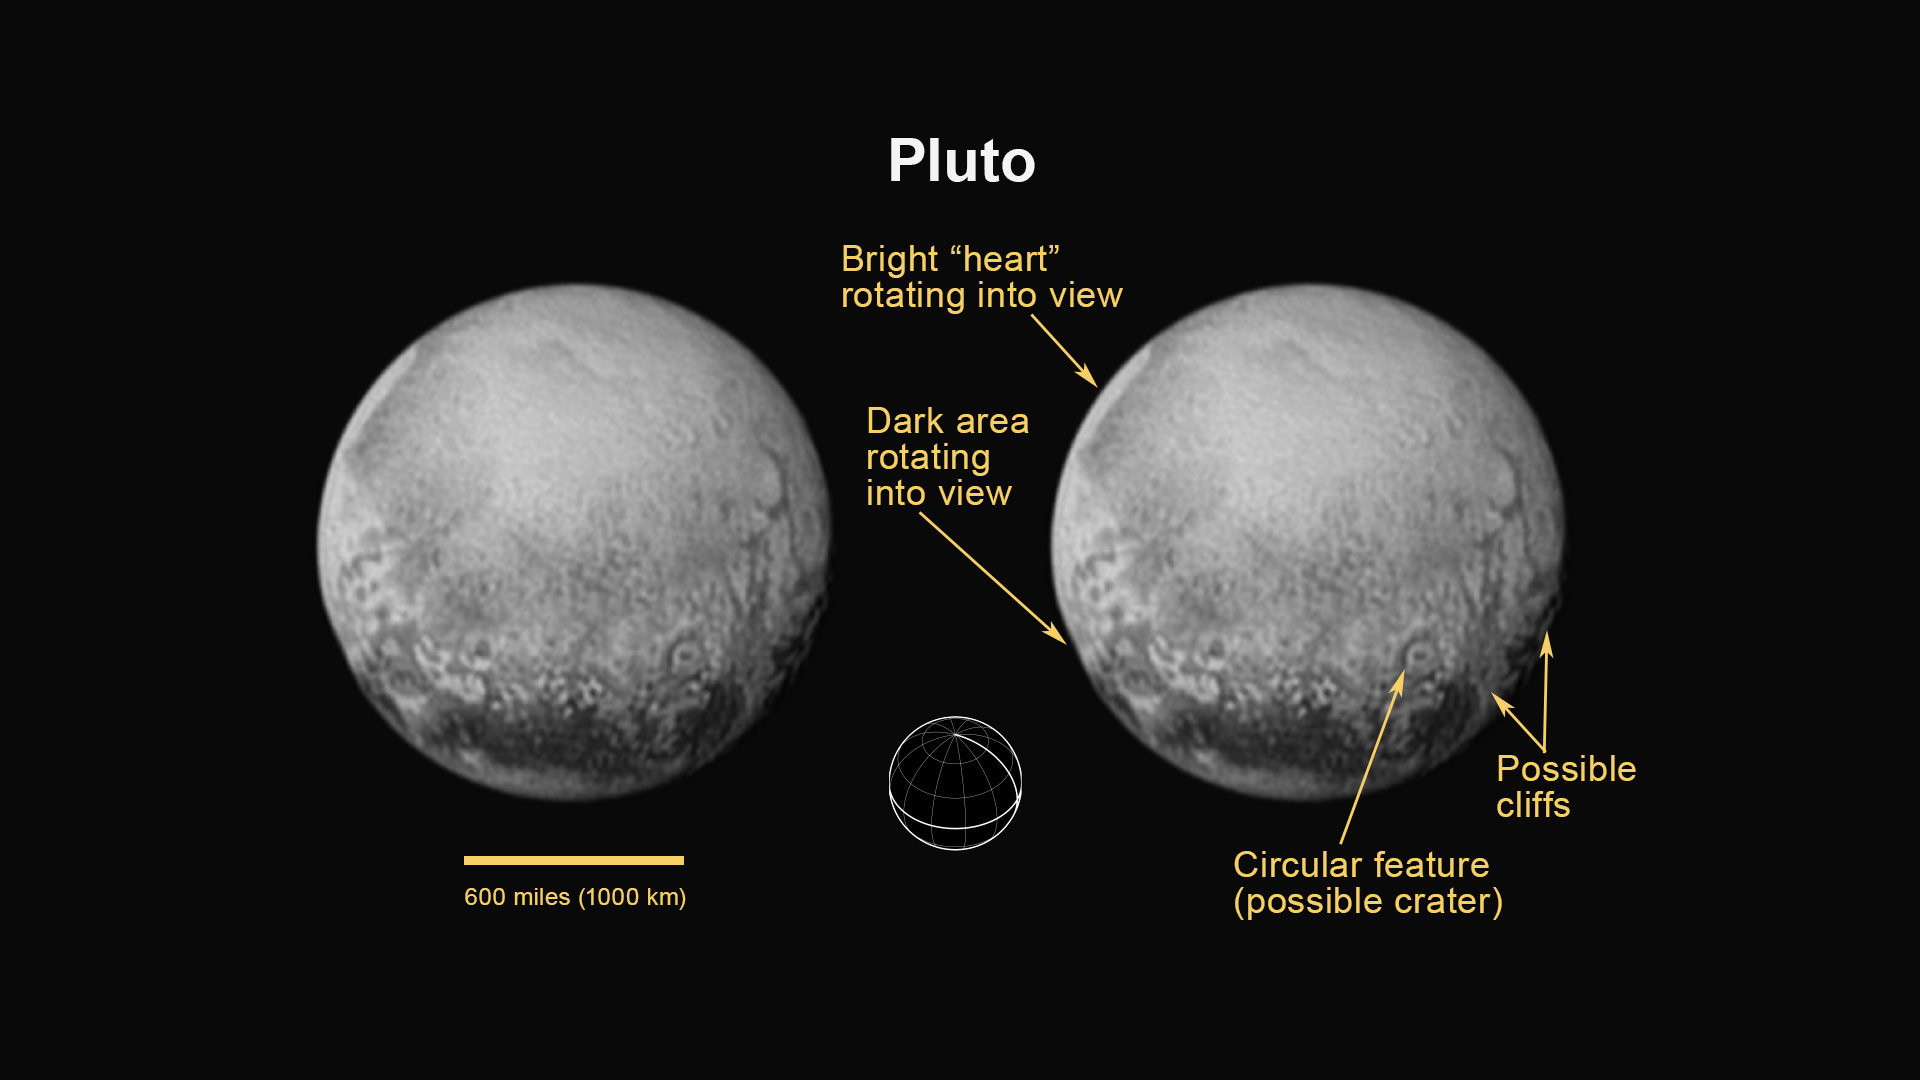 Pluto Seen by New Horizons, July 11, 2015 (Annotated)